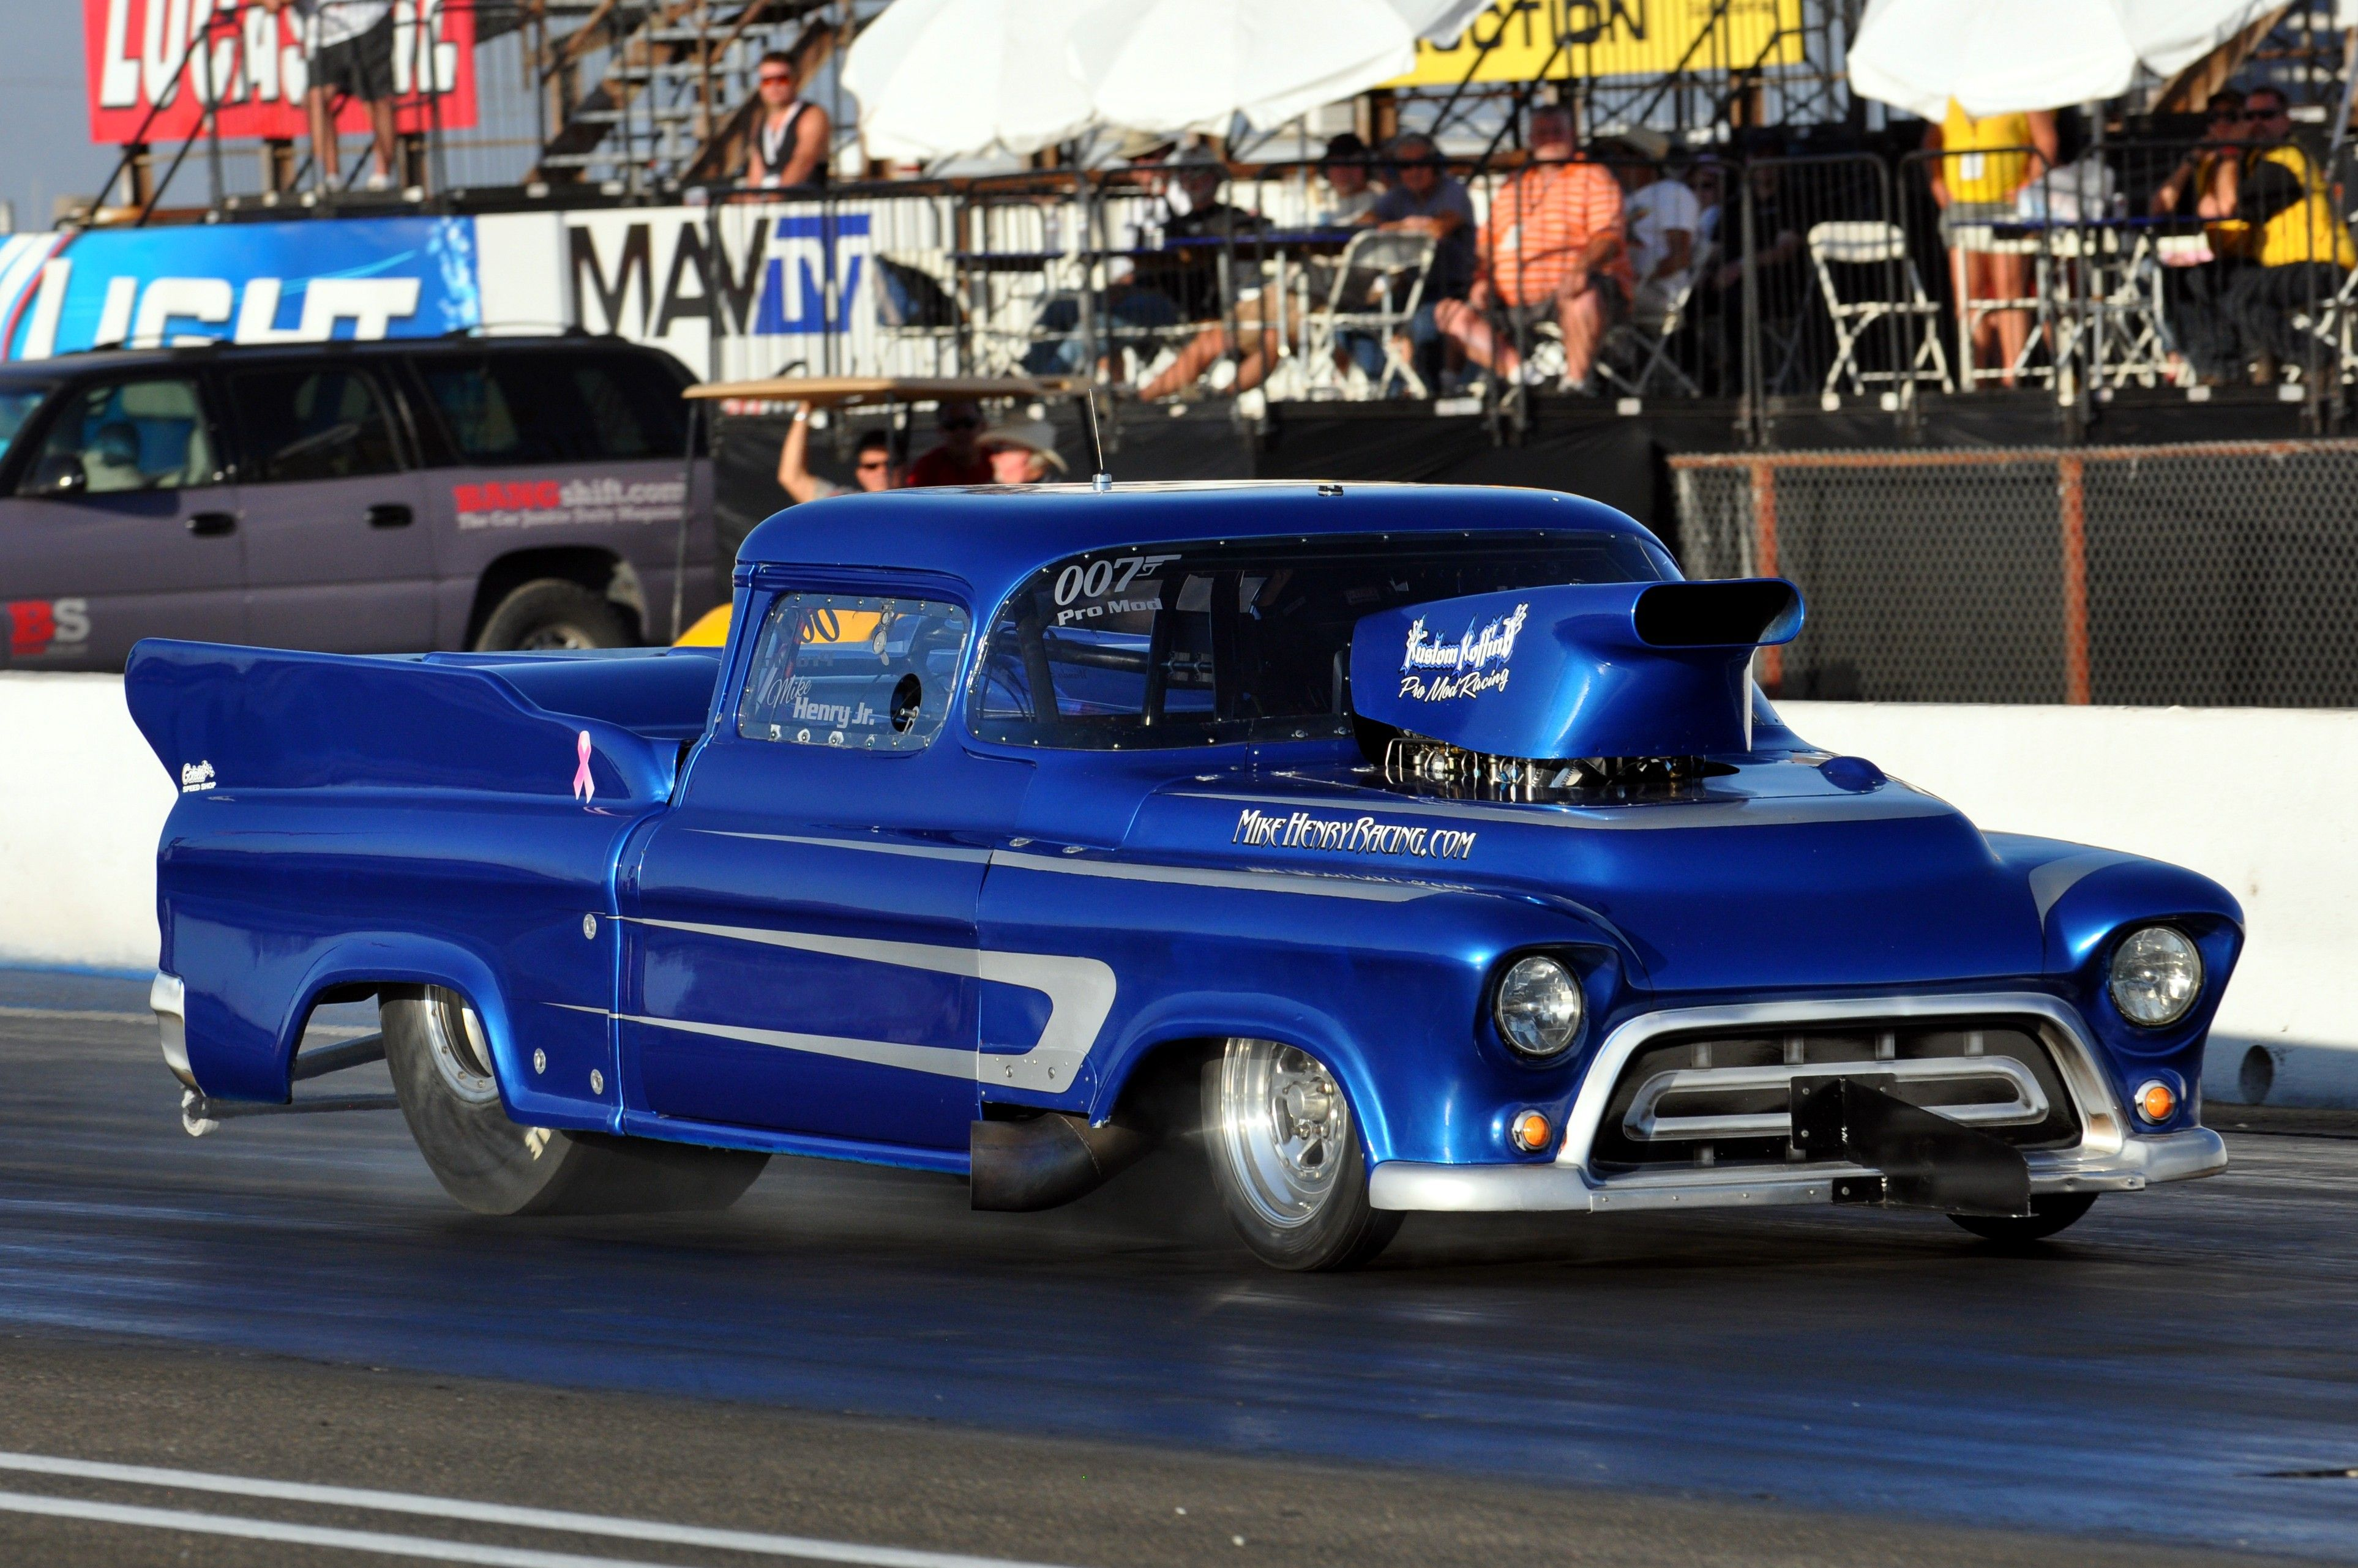 Pro Mod Truck | Pro mods | Street outlaws cars, American